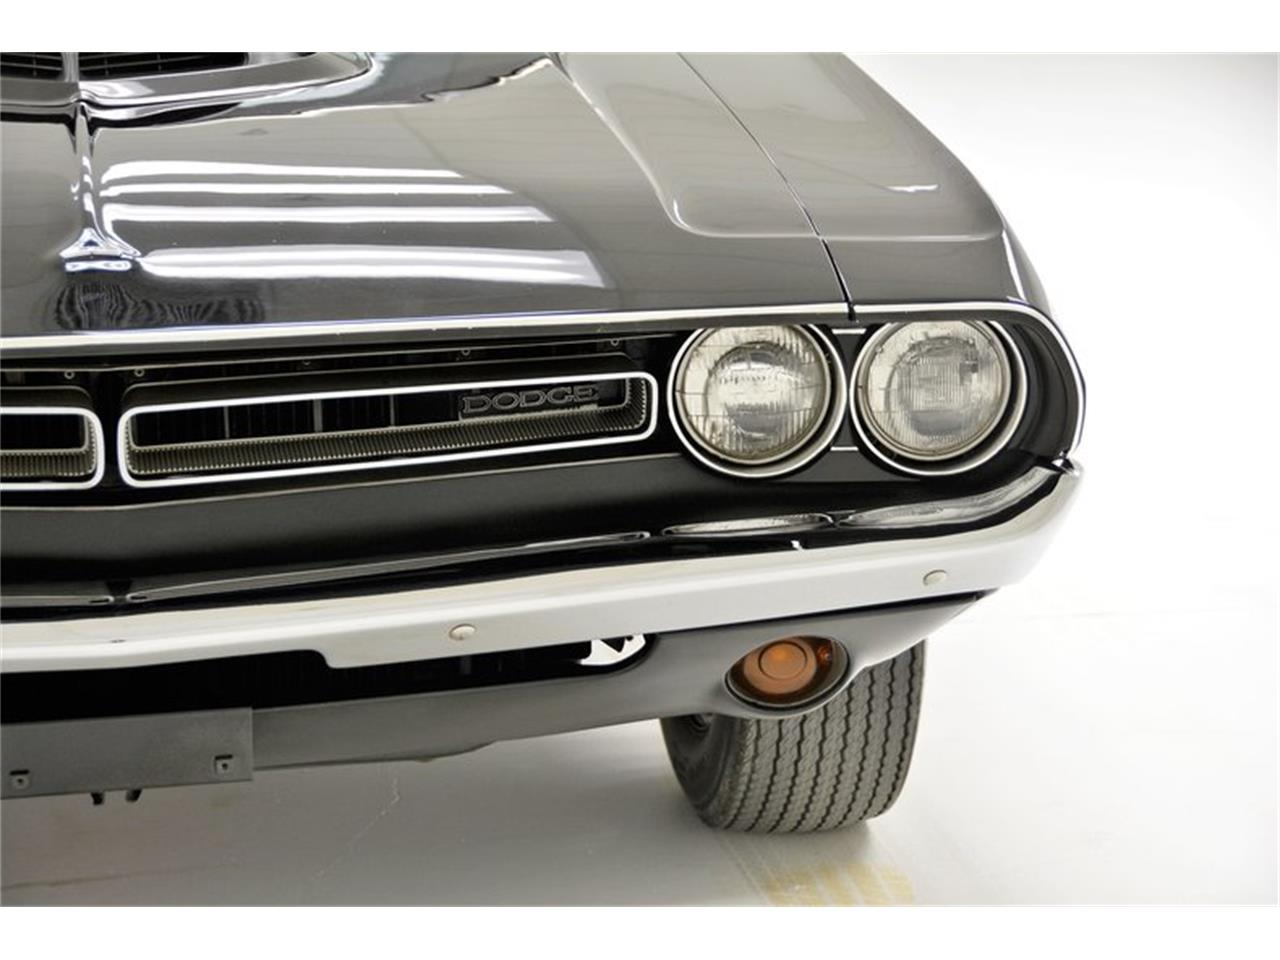 Large Picture of Classic 1971 Dodge Challenger R/T located in Pennsylvania - $195,000.00 Offered by Classic Auto Mall - MZFX